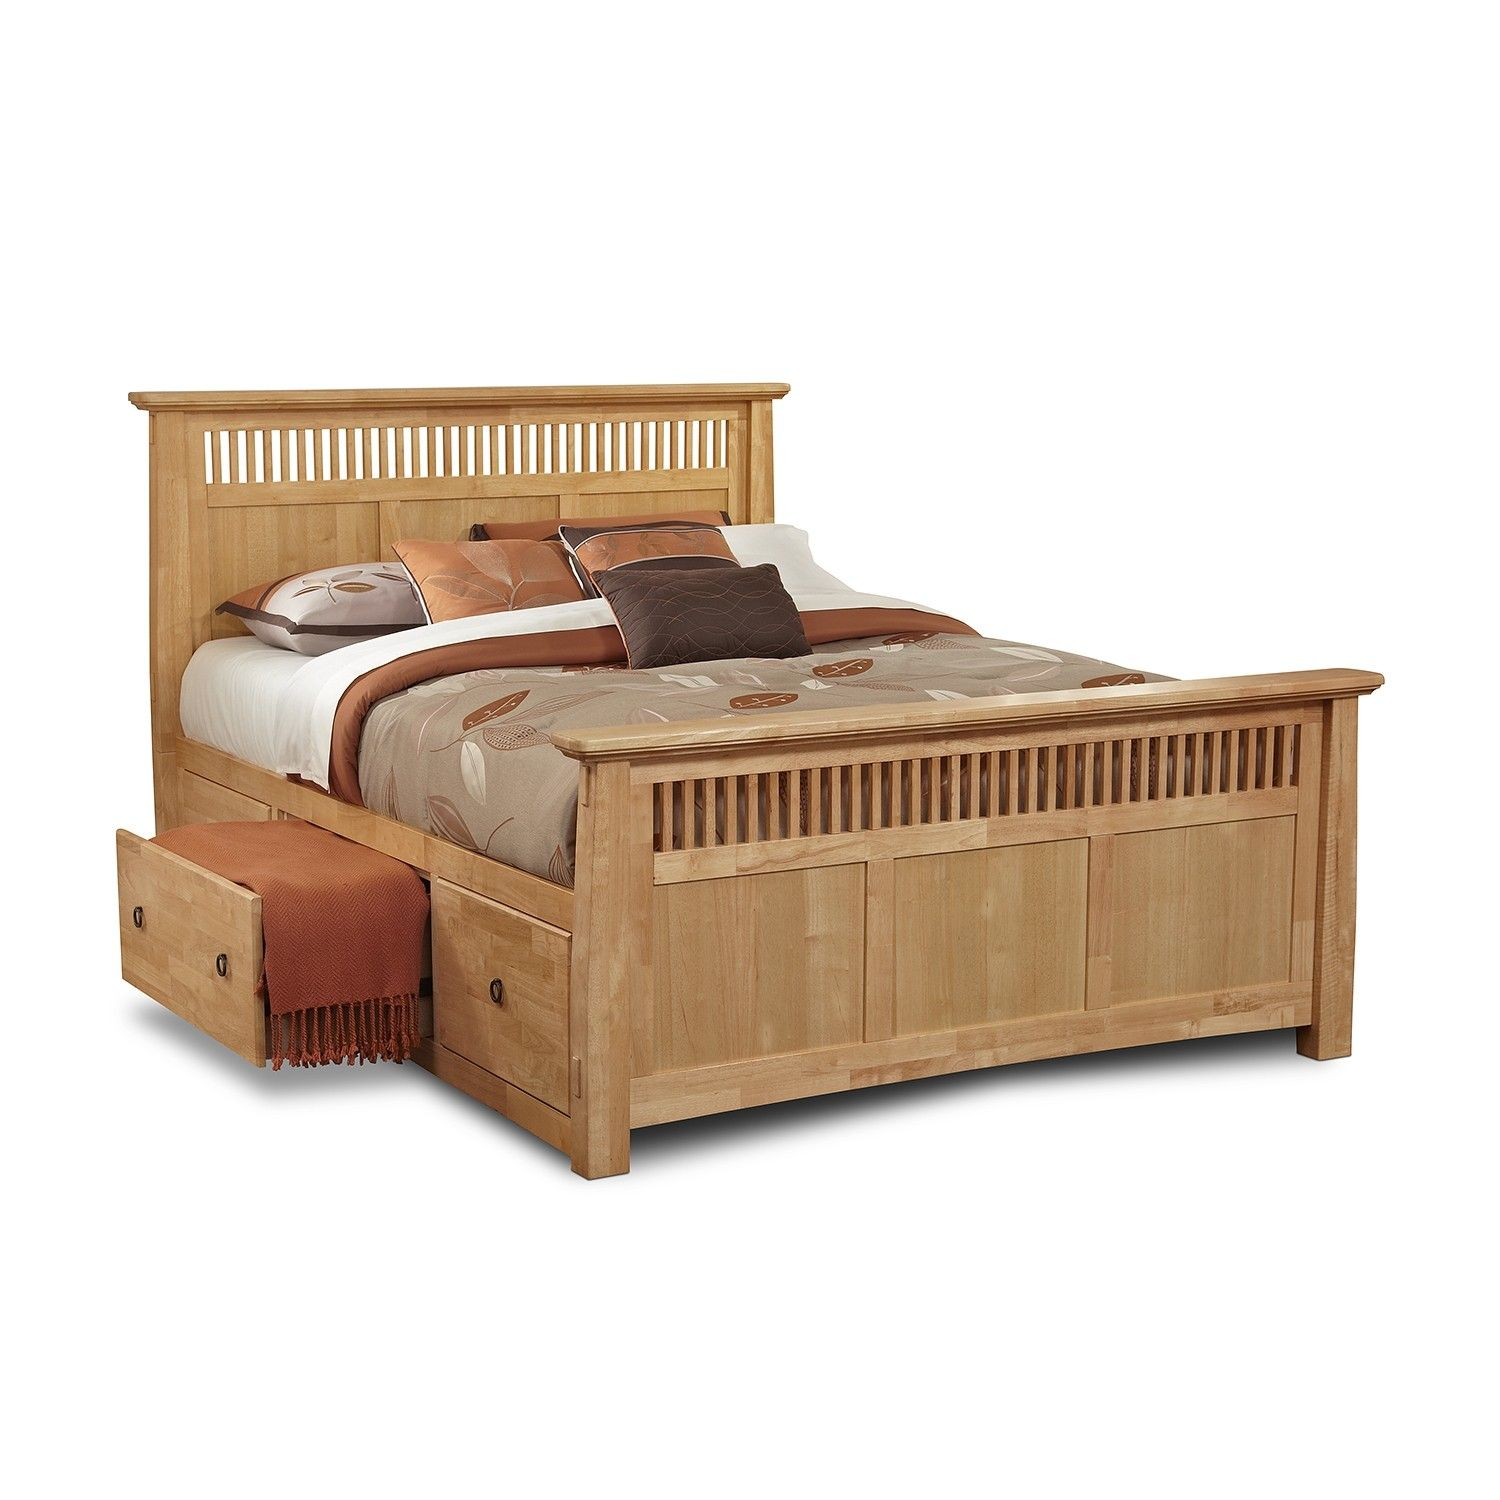 Not a buying site queen size bed frame with storage for Wooden divan bed with drawers